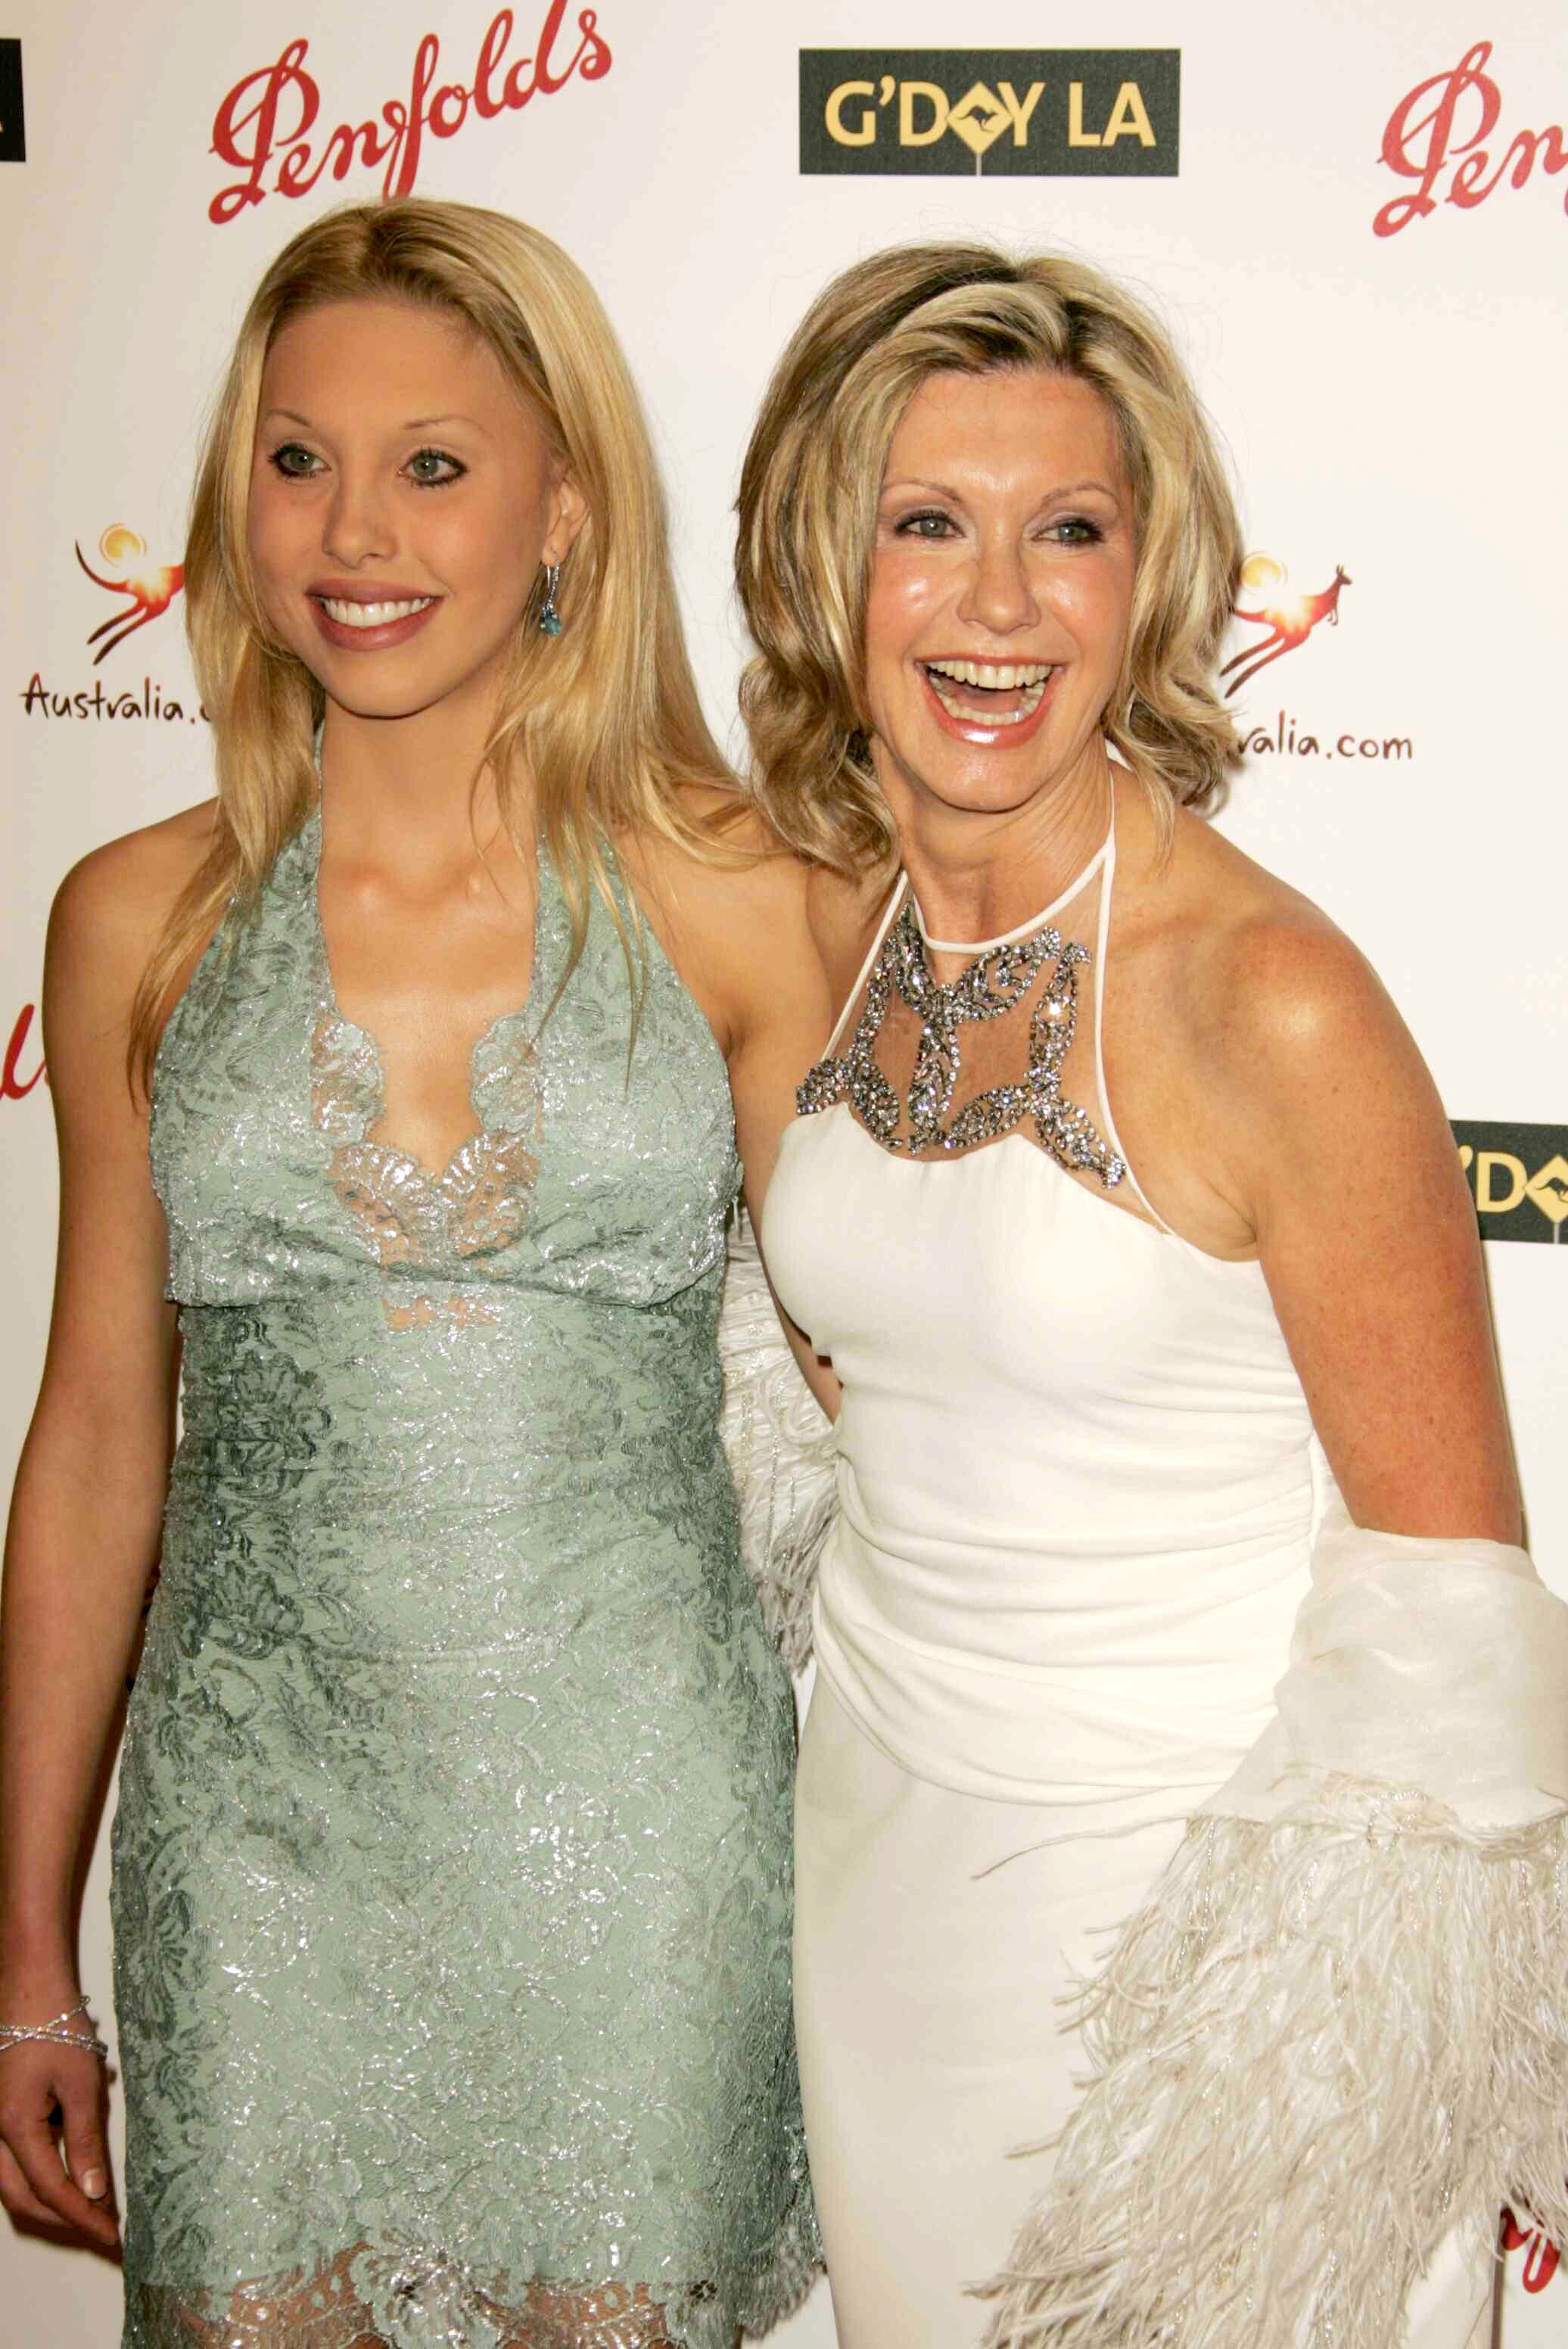 Olivia Newton-John Announces Daughter Chloe, 33, Is Cast on 'DWTS' Australia: 'So Excited'